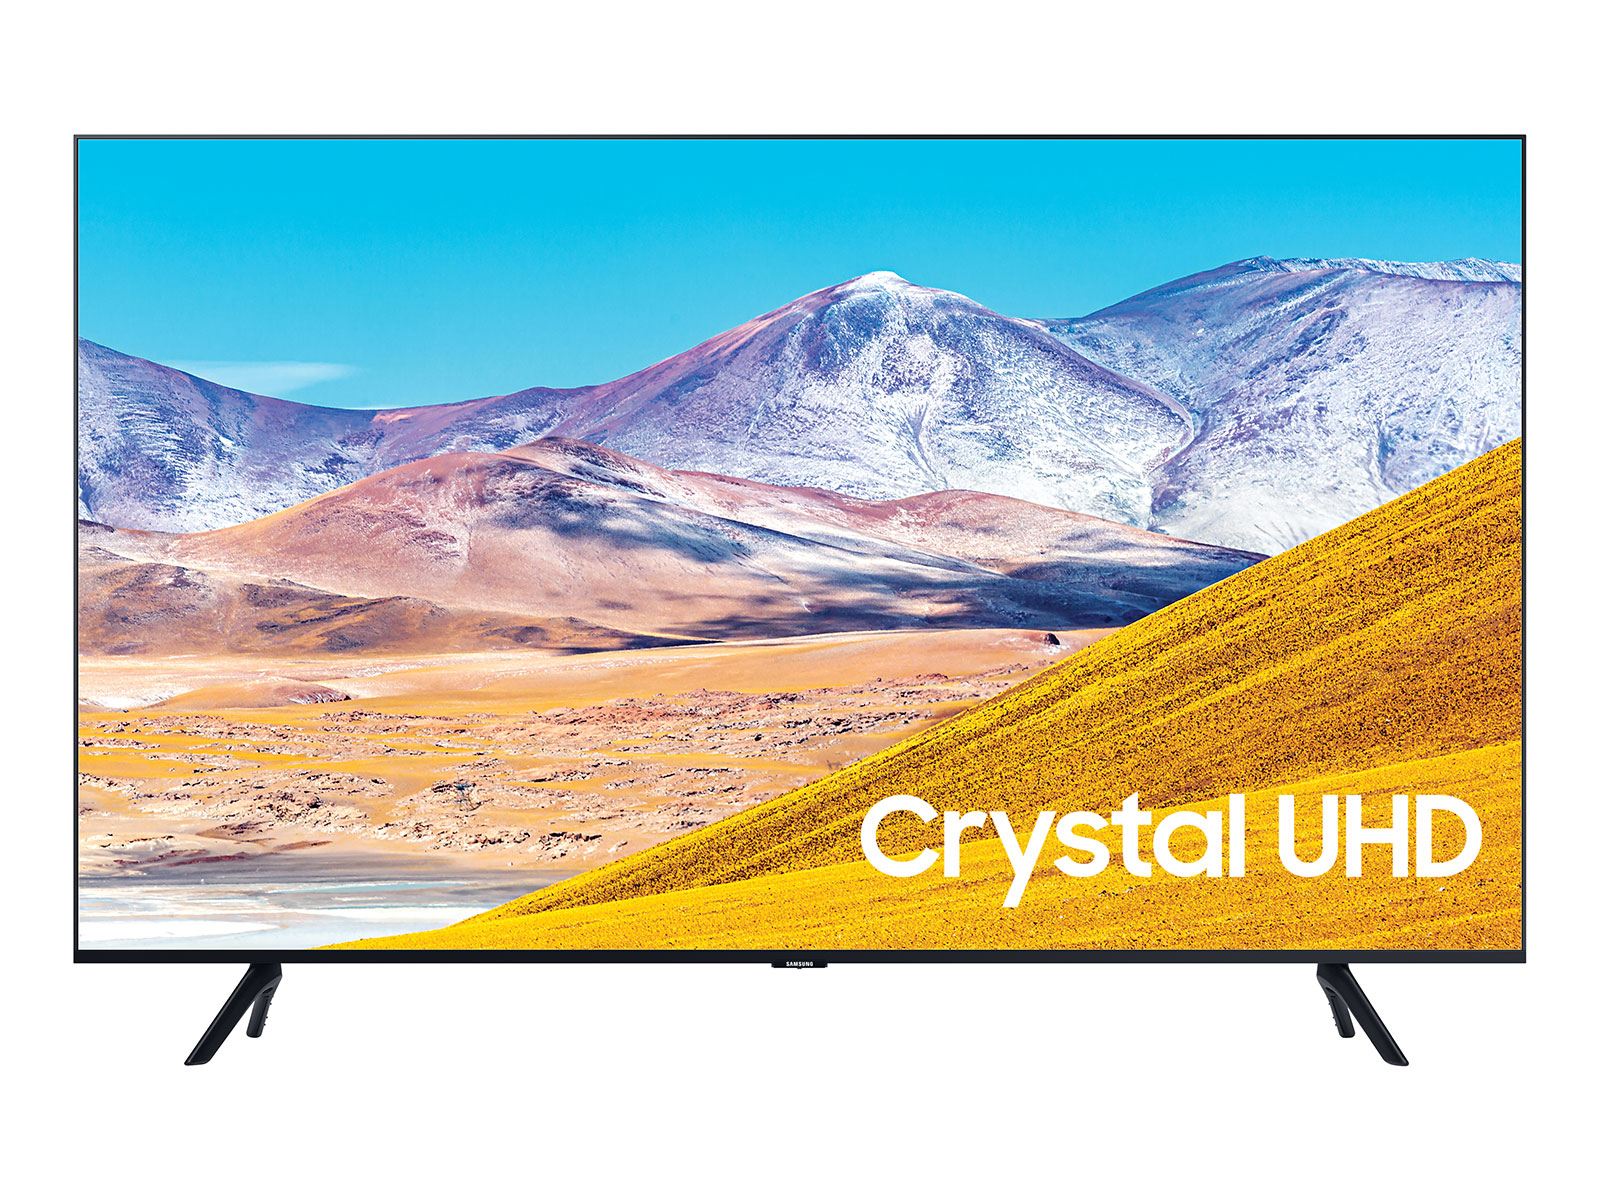 Samsung 50 TU8000 Crystal UHD 4K Smart TV with Alexa Built-in UN50TU8000FXZA 2020